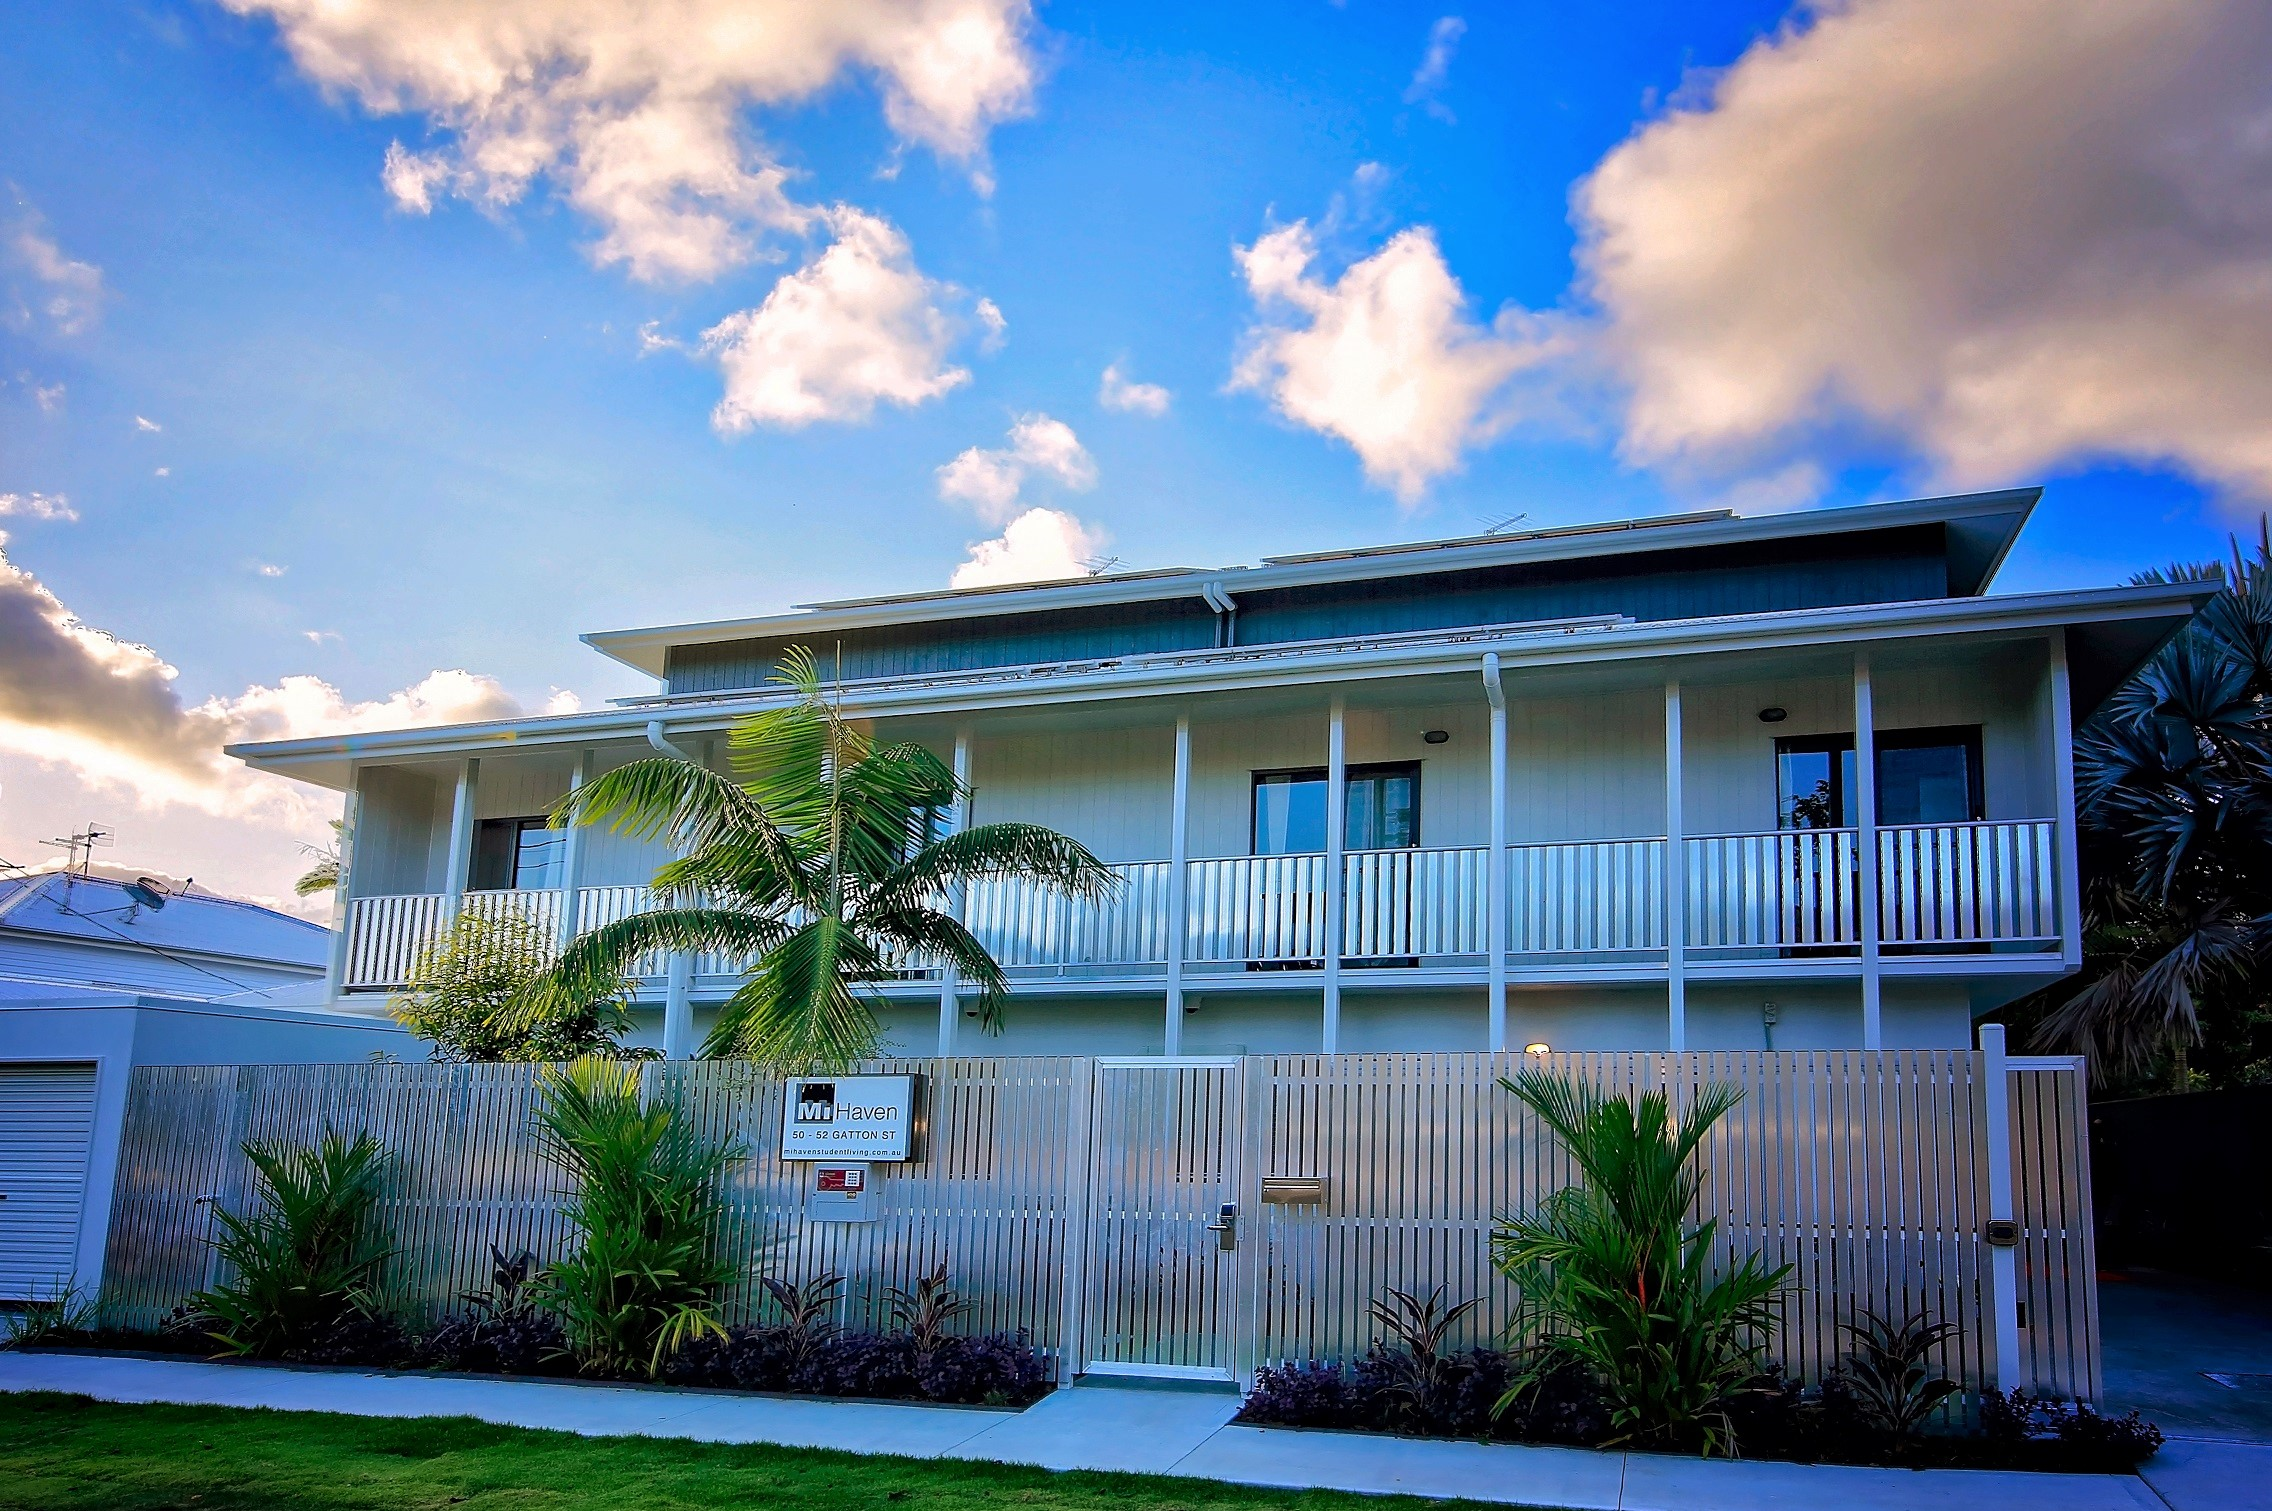 MiHaven Student Living (Cairns)